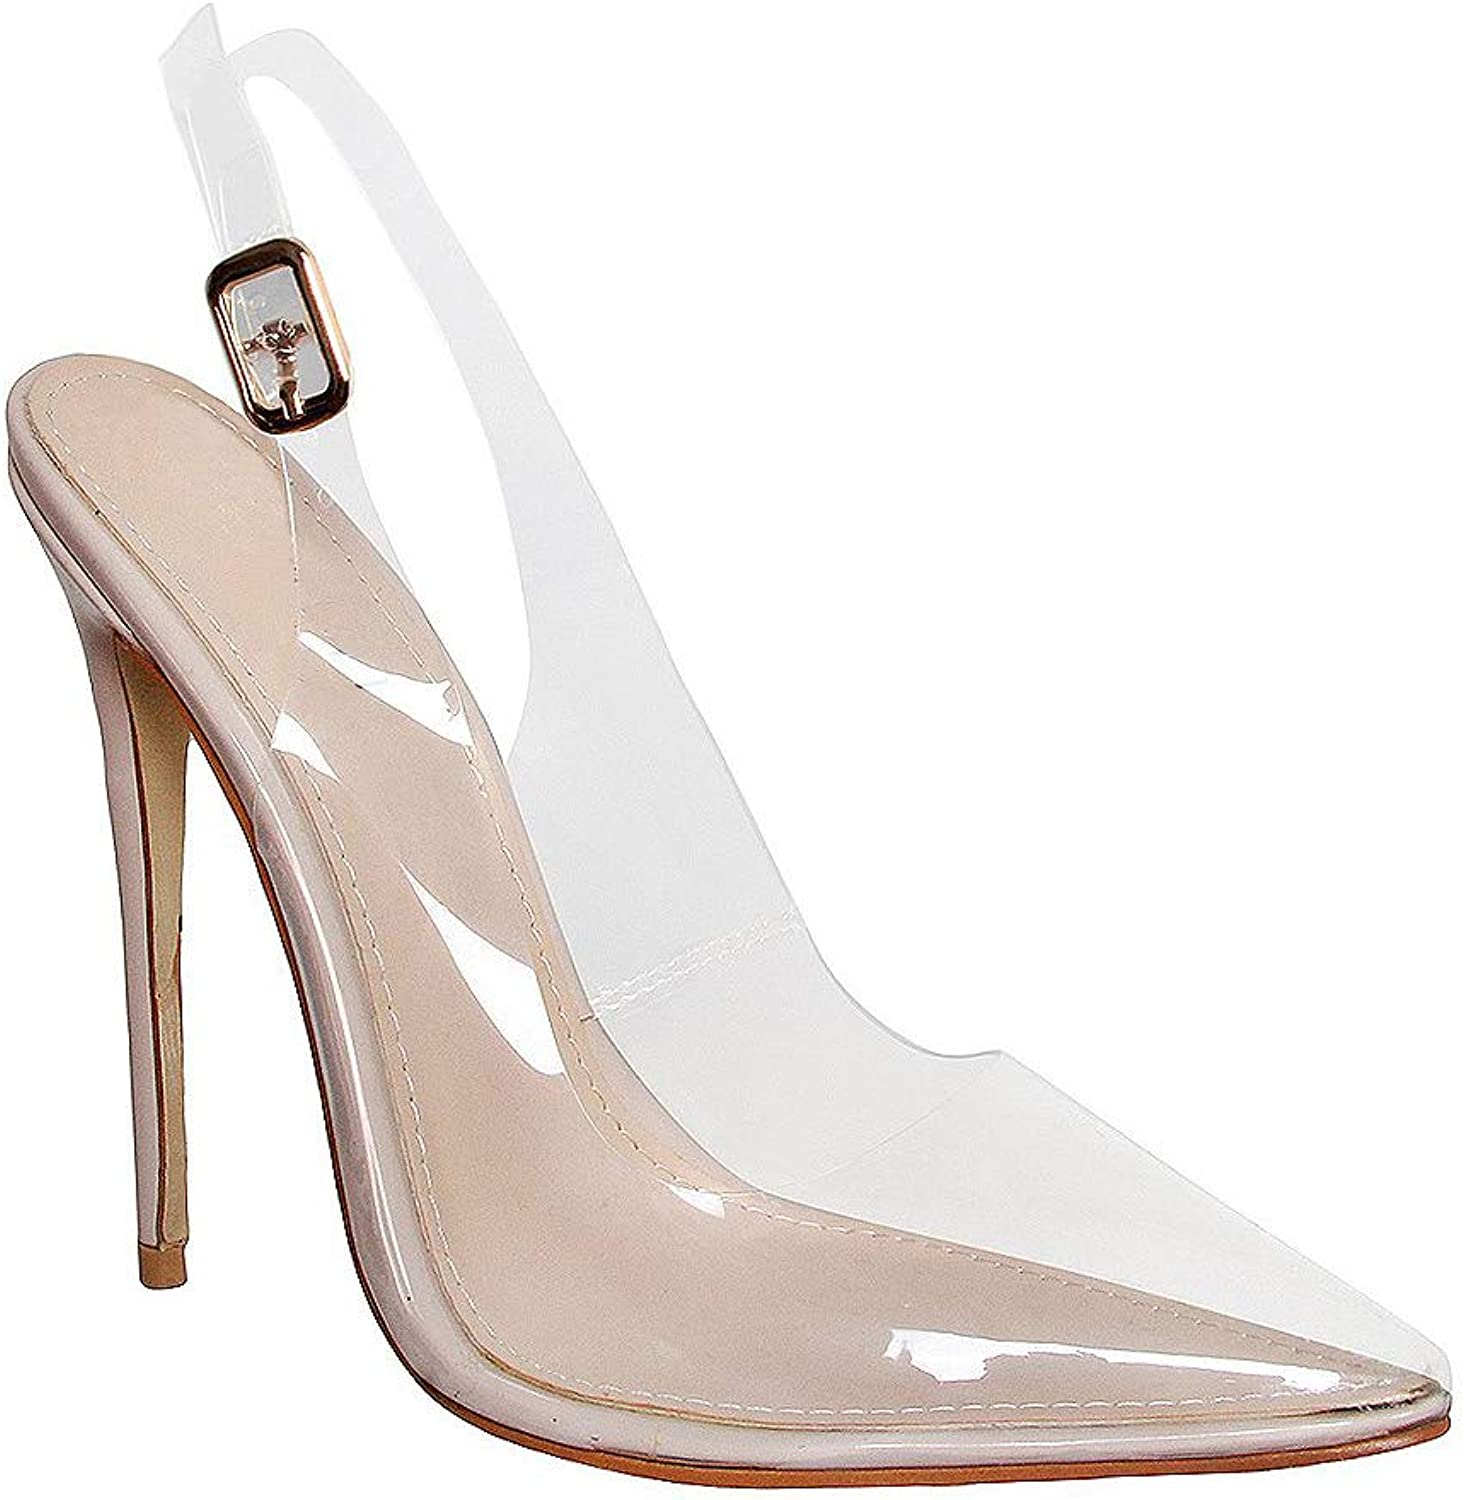 Hell&Heel Clear Stiletto Pumps Court shoes